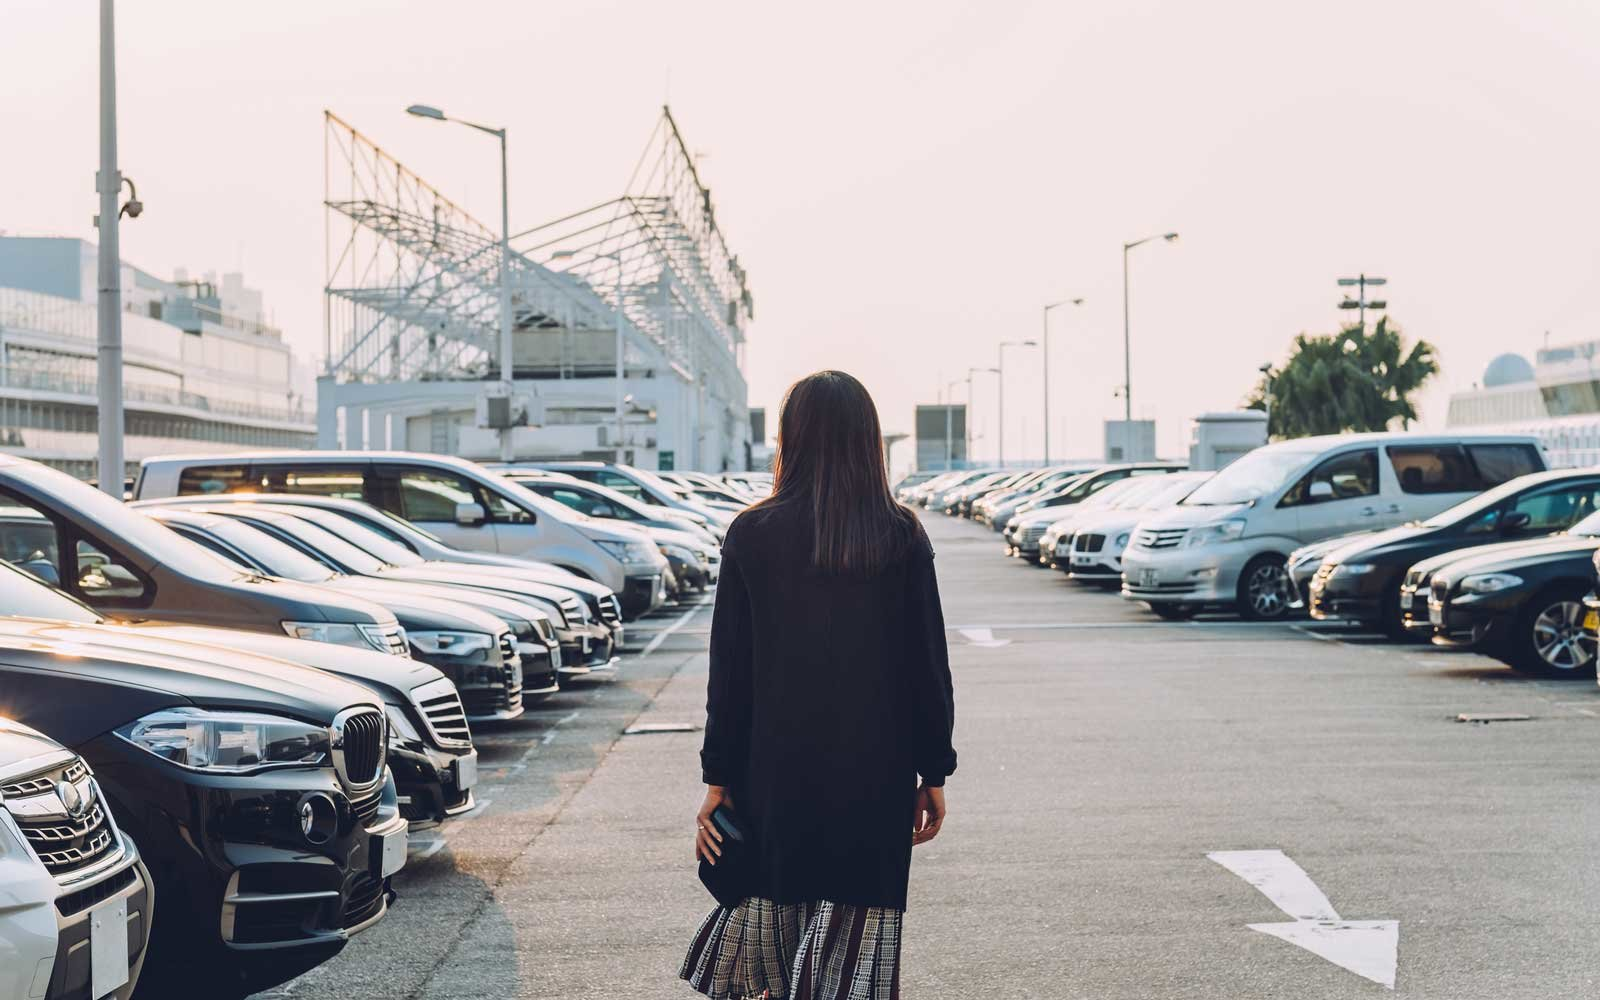 Rear view of young woman walking in an outdoor car park looking for her car.